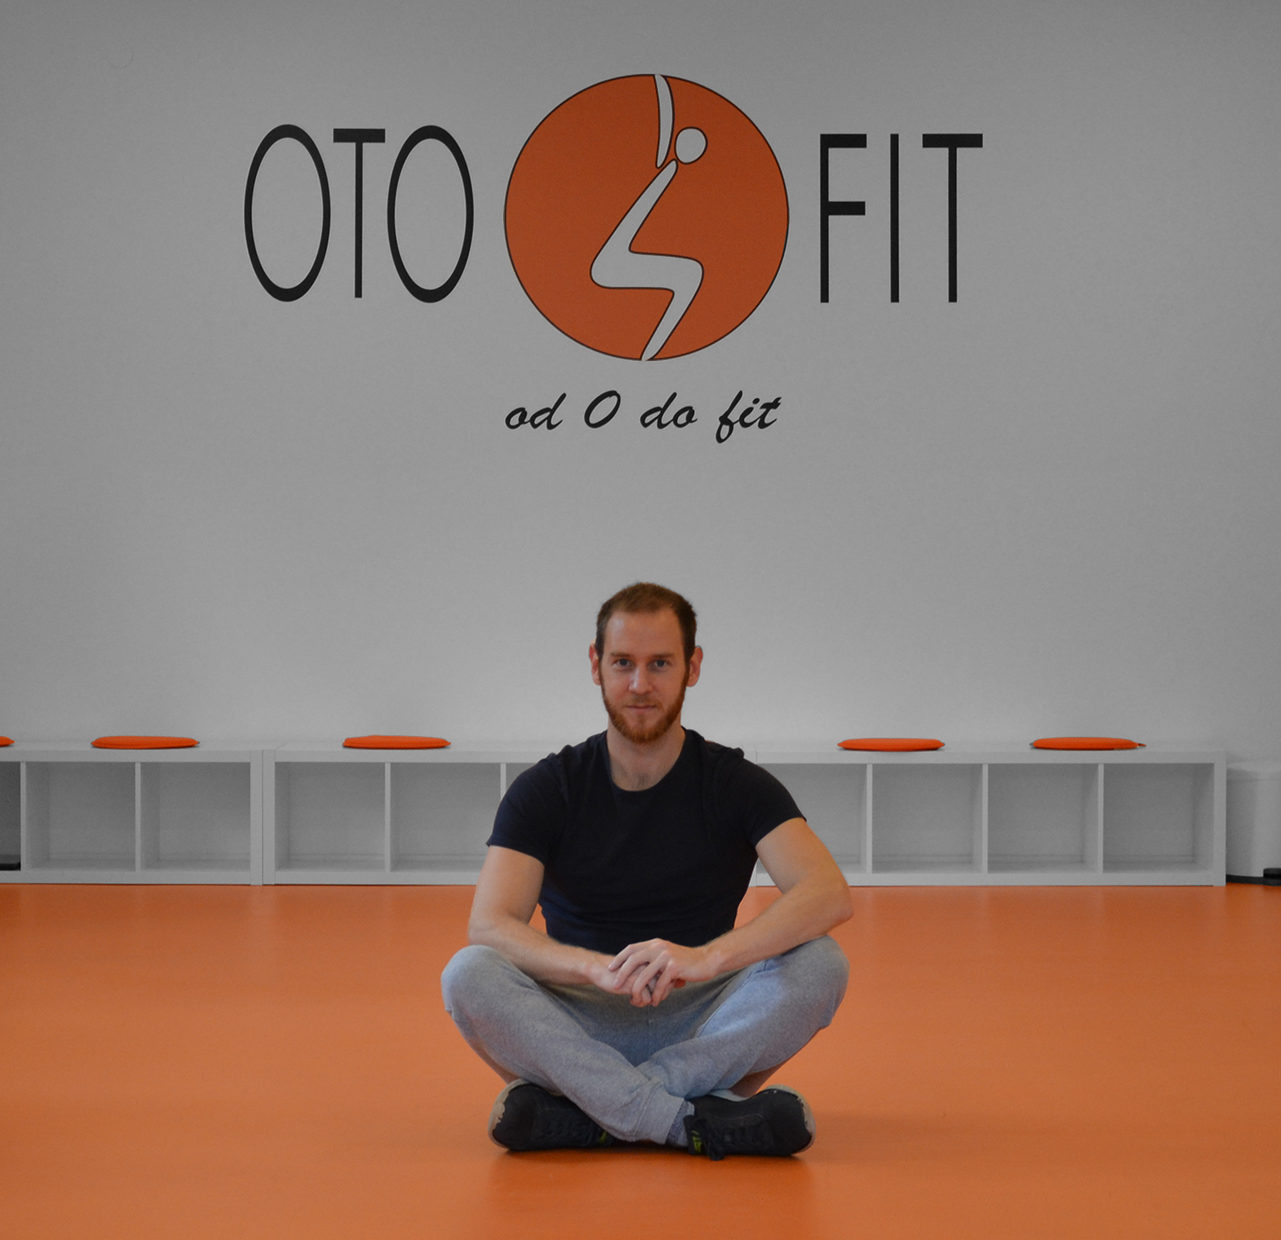 Vadbeni center Otofit